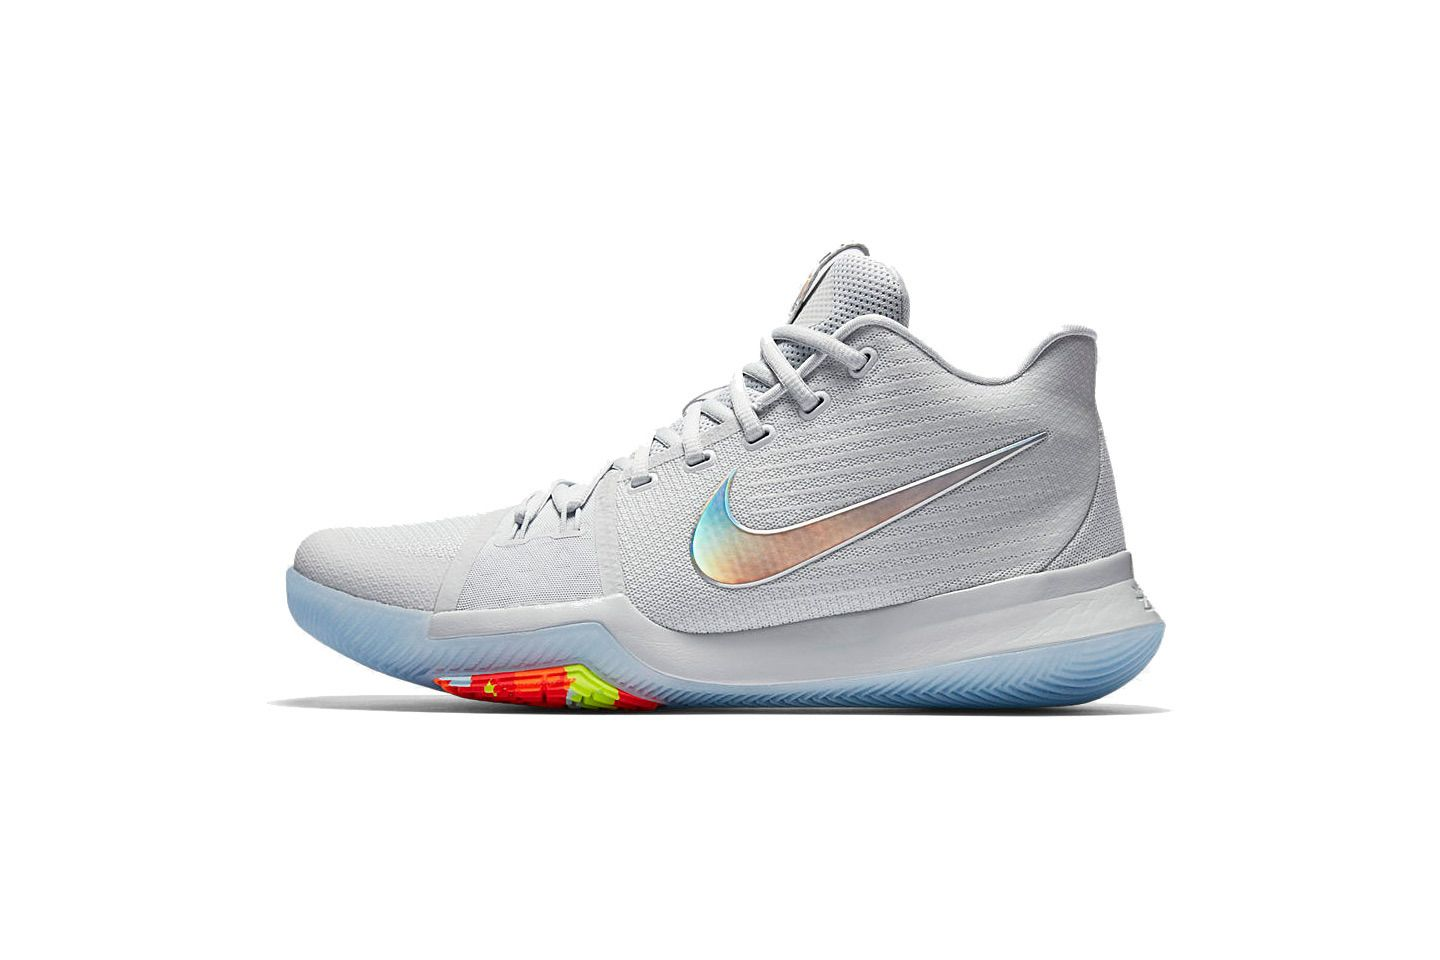 Nike Unveils Its Time To Shine Pack Girls Basketball Shoes Jordan Shoes Girls Nike Air Shoes